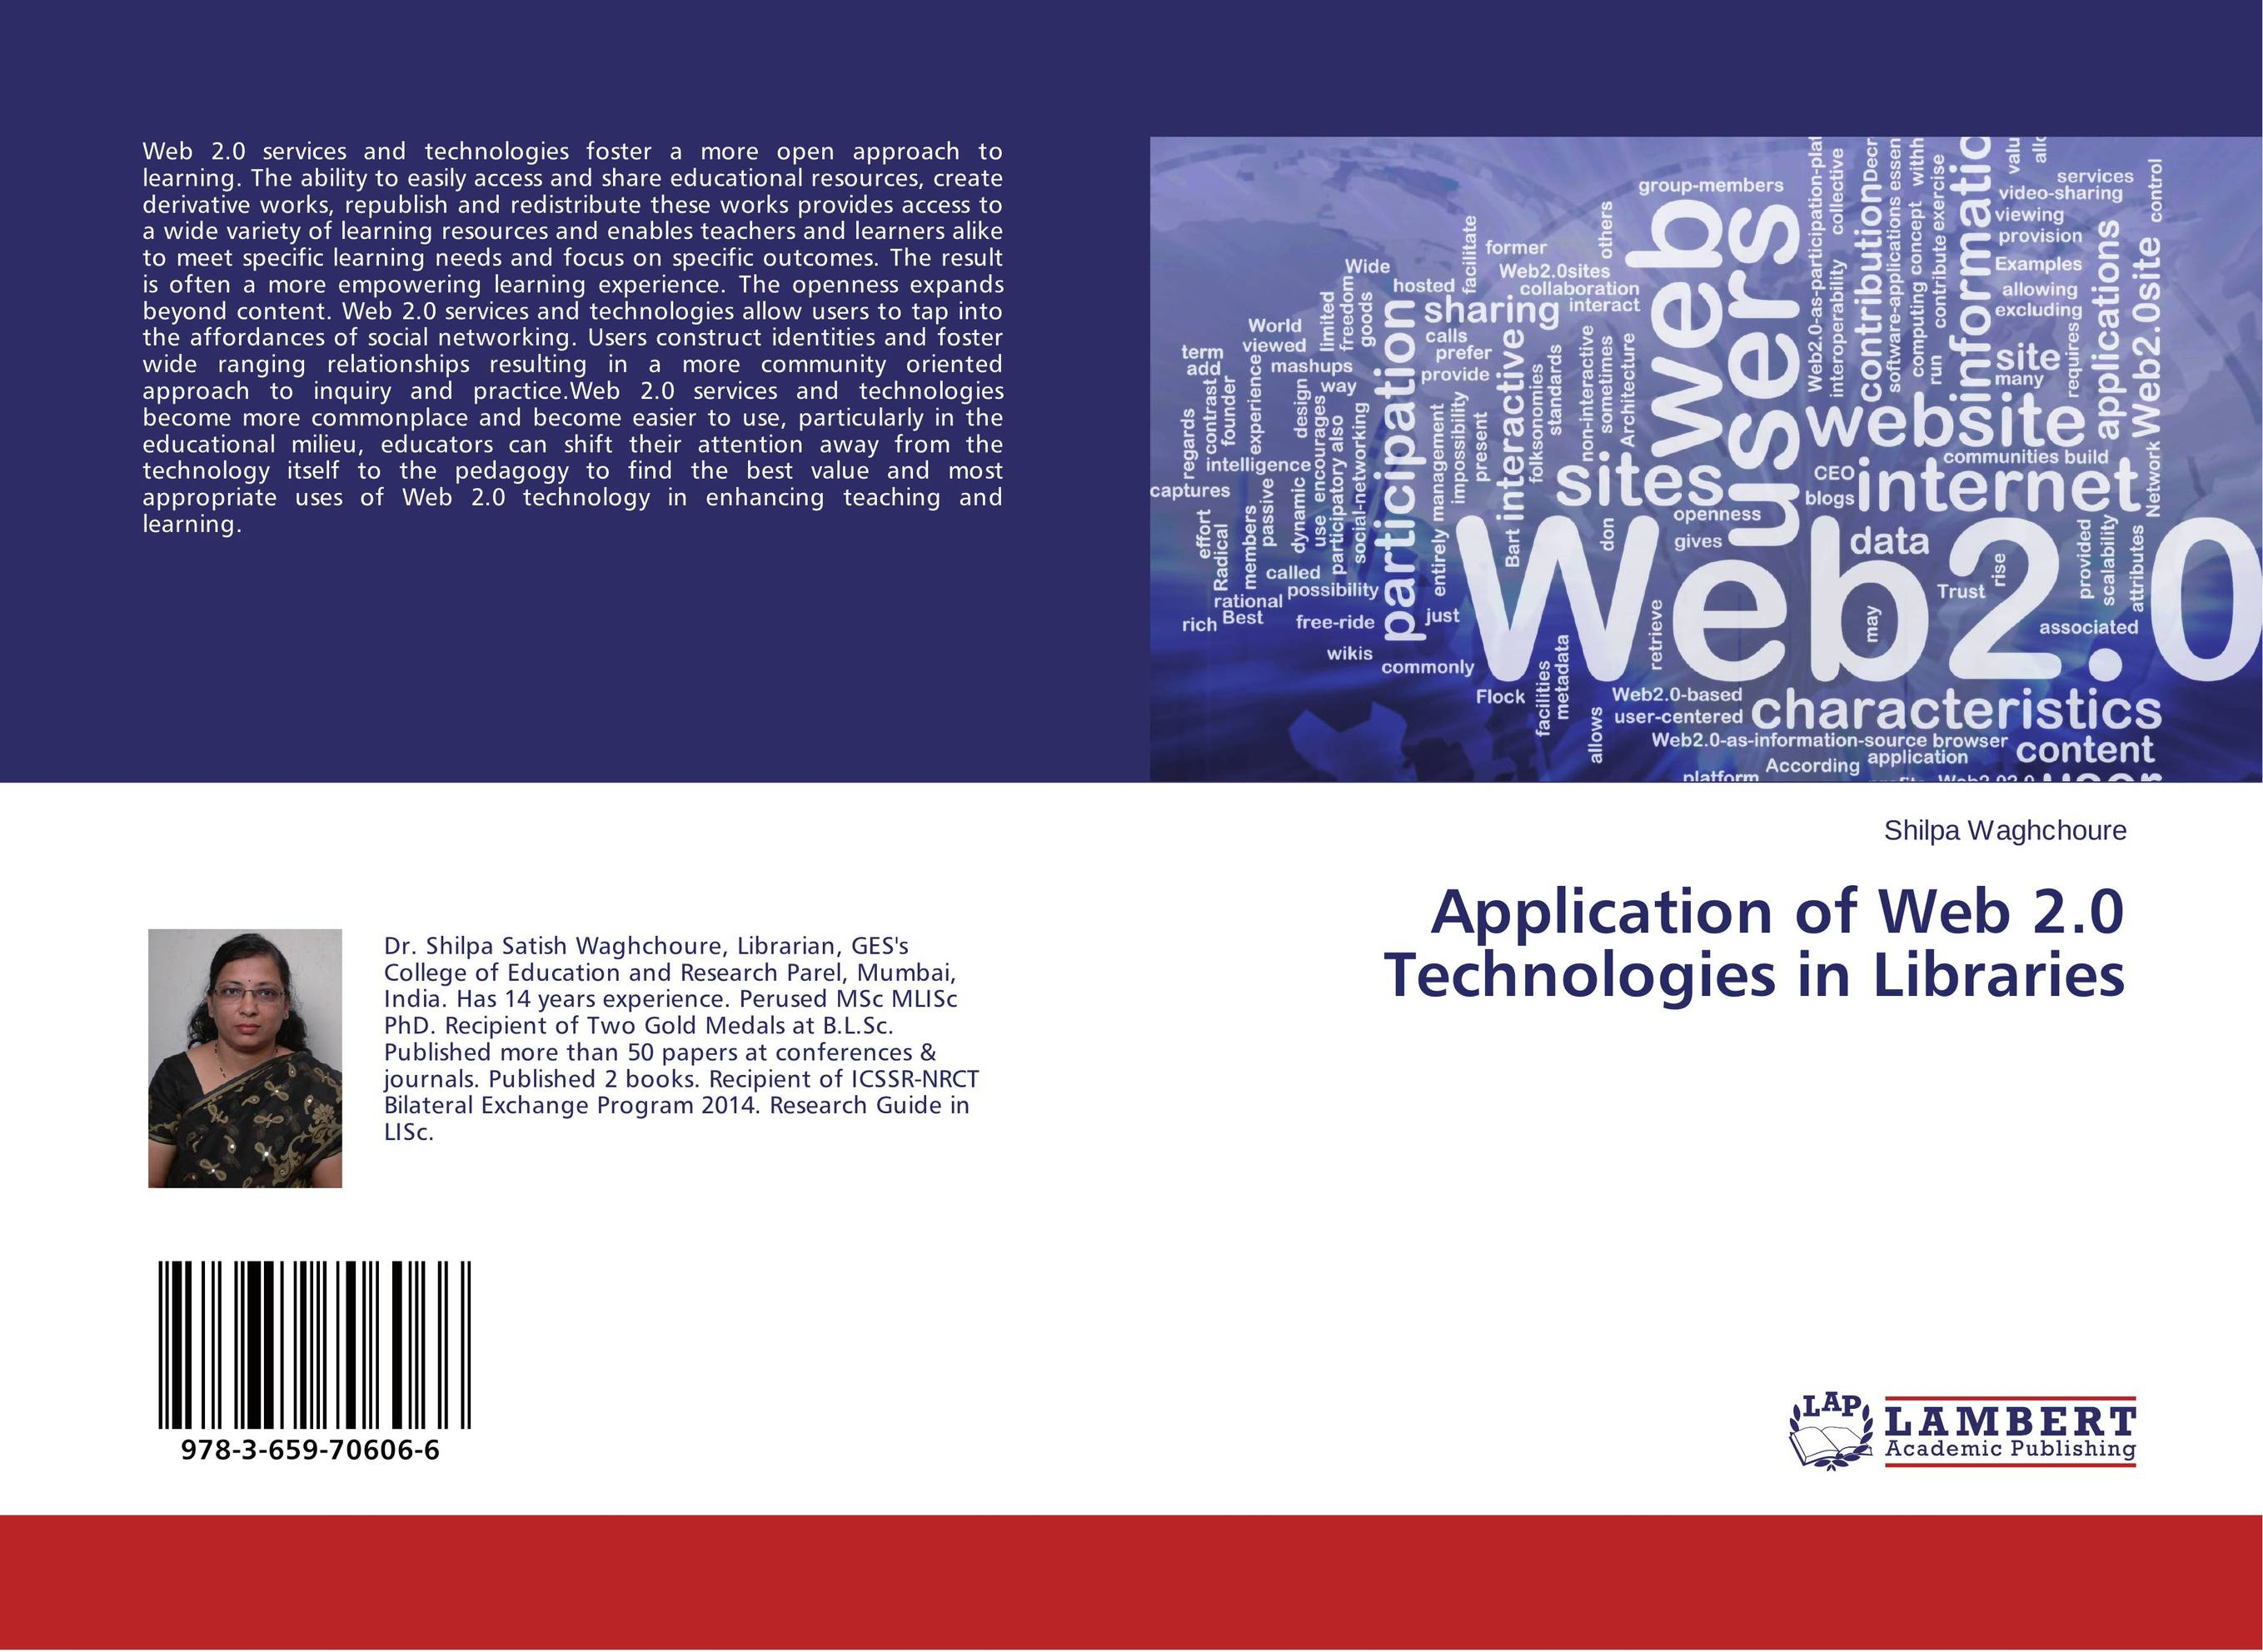 Application of Web 2.0 Technologies in Libraries learning resources набор пробей